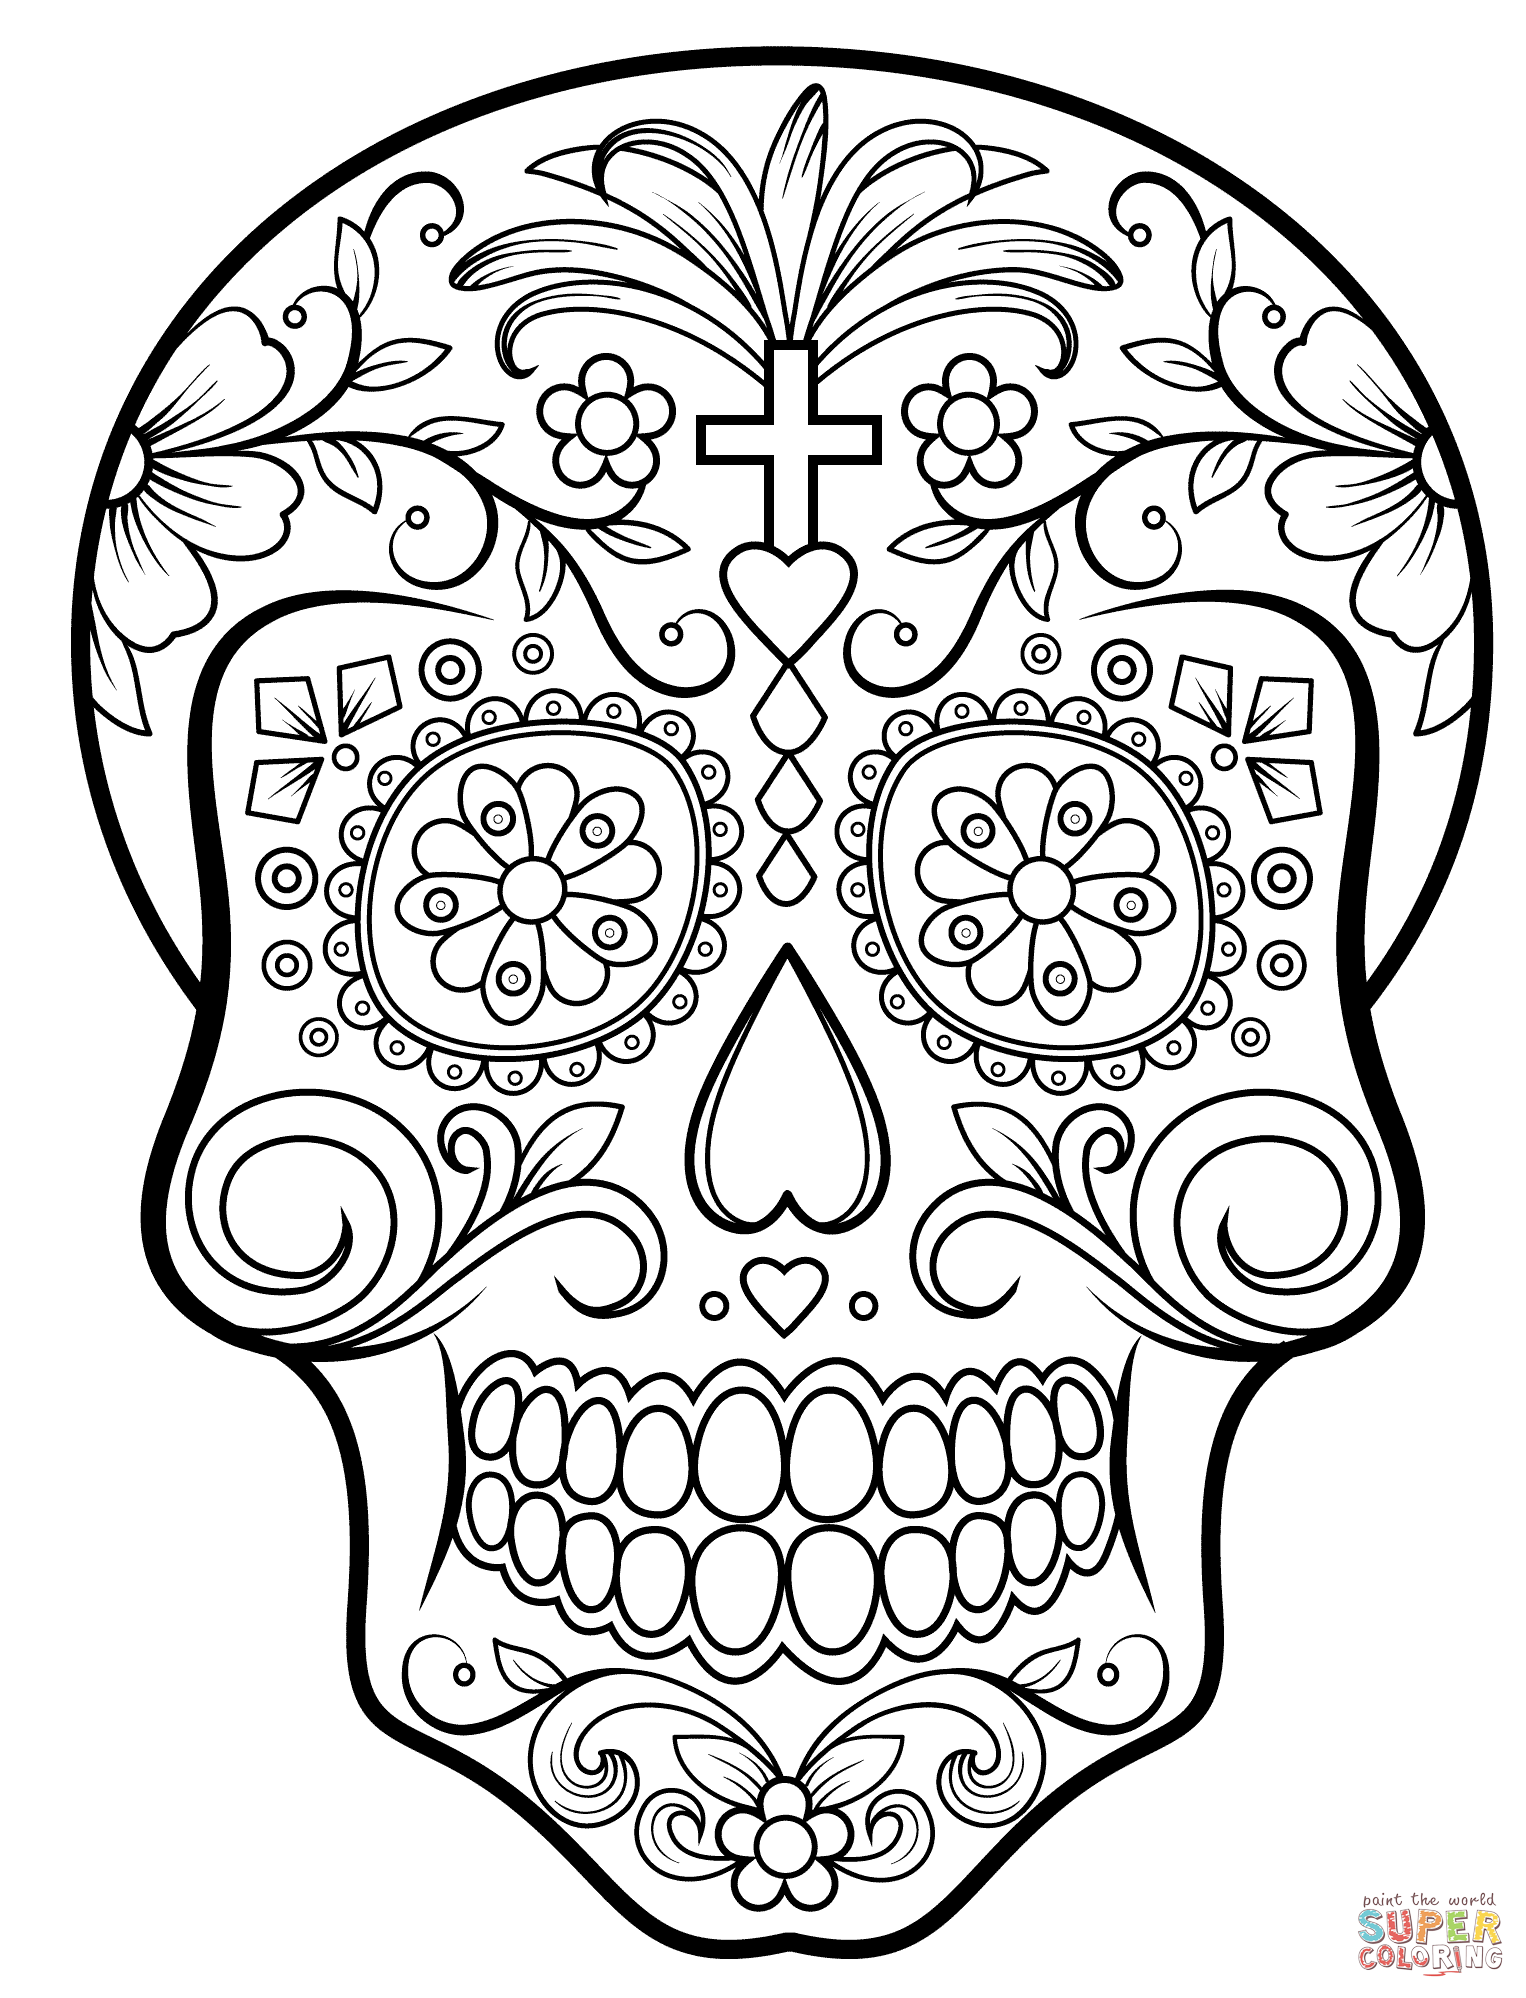 day of dead coloring pages galleon day of the dead coloring book coloring is fun coloring pages of day dead